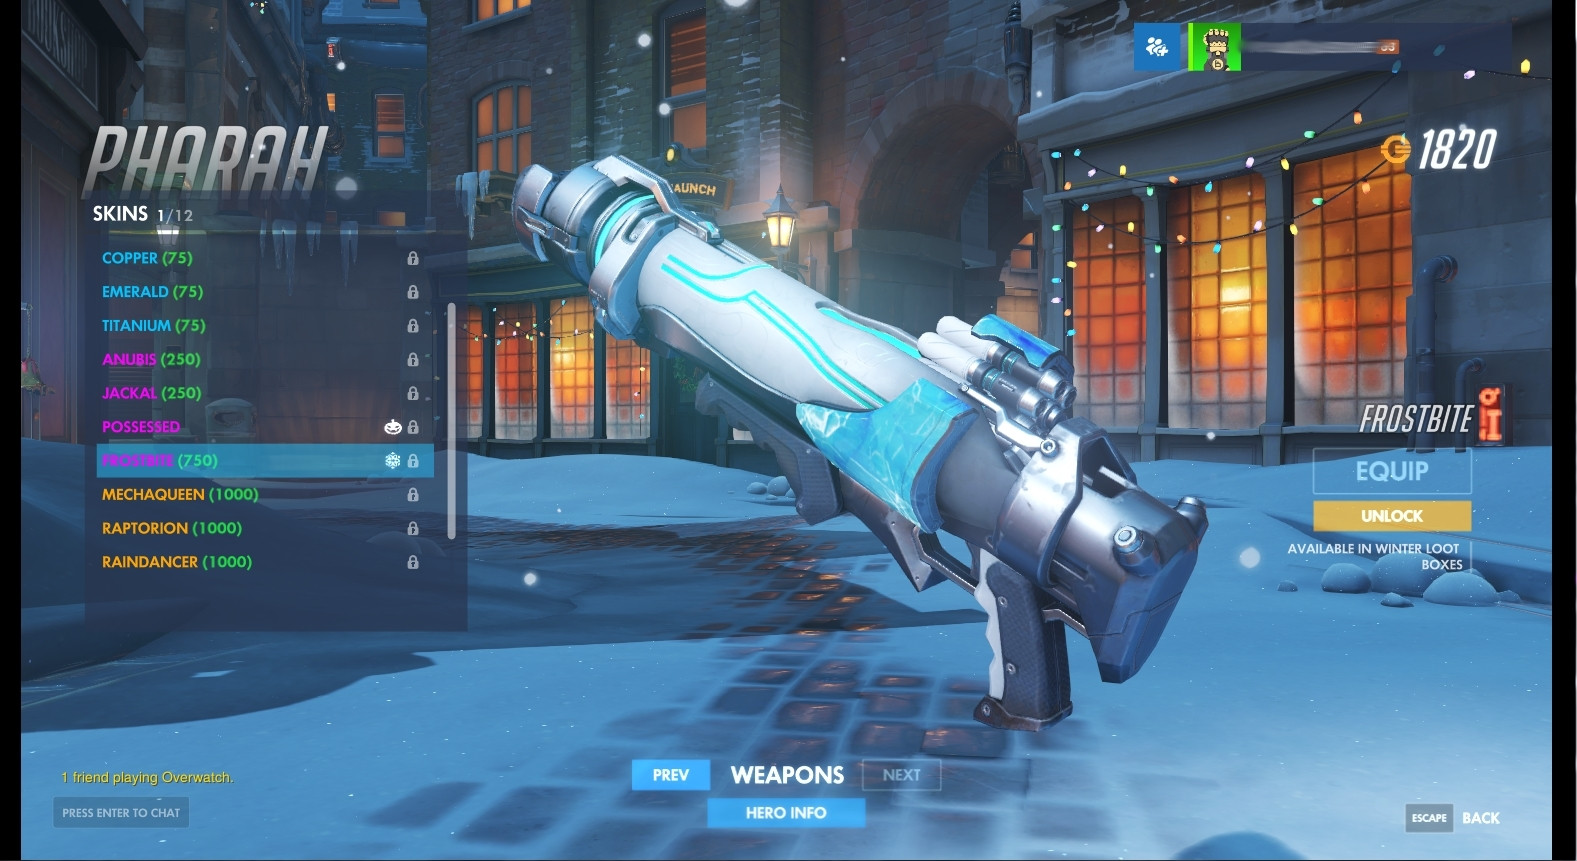 Pharah (Frostbite) Weapon